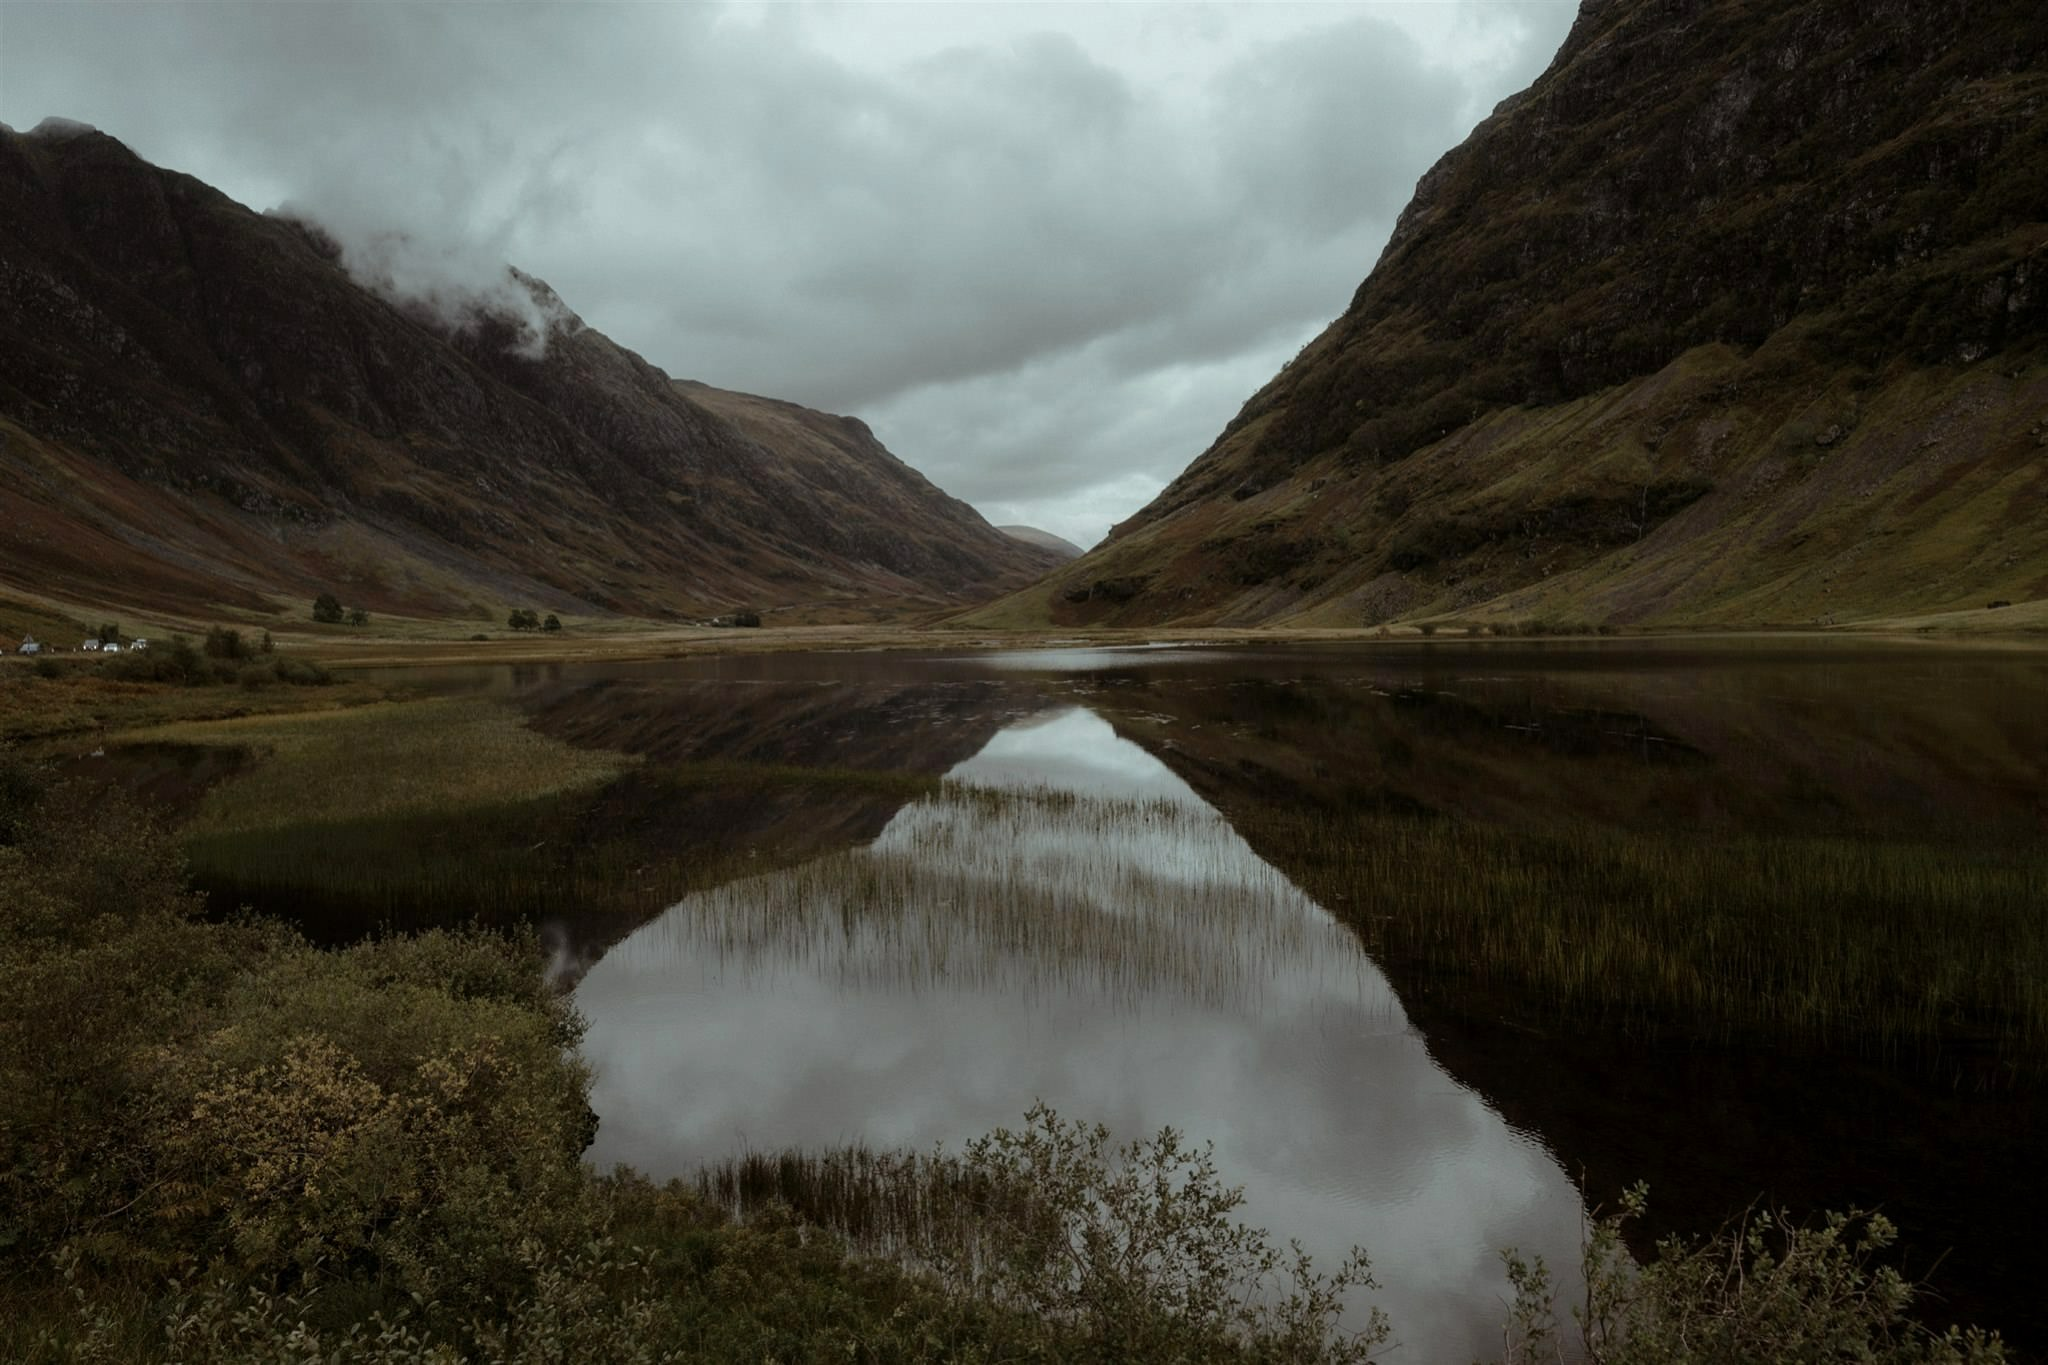 Loch with mountain reflections in Glencoe, Scotland